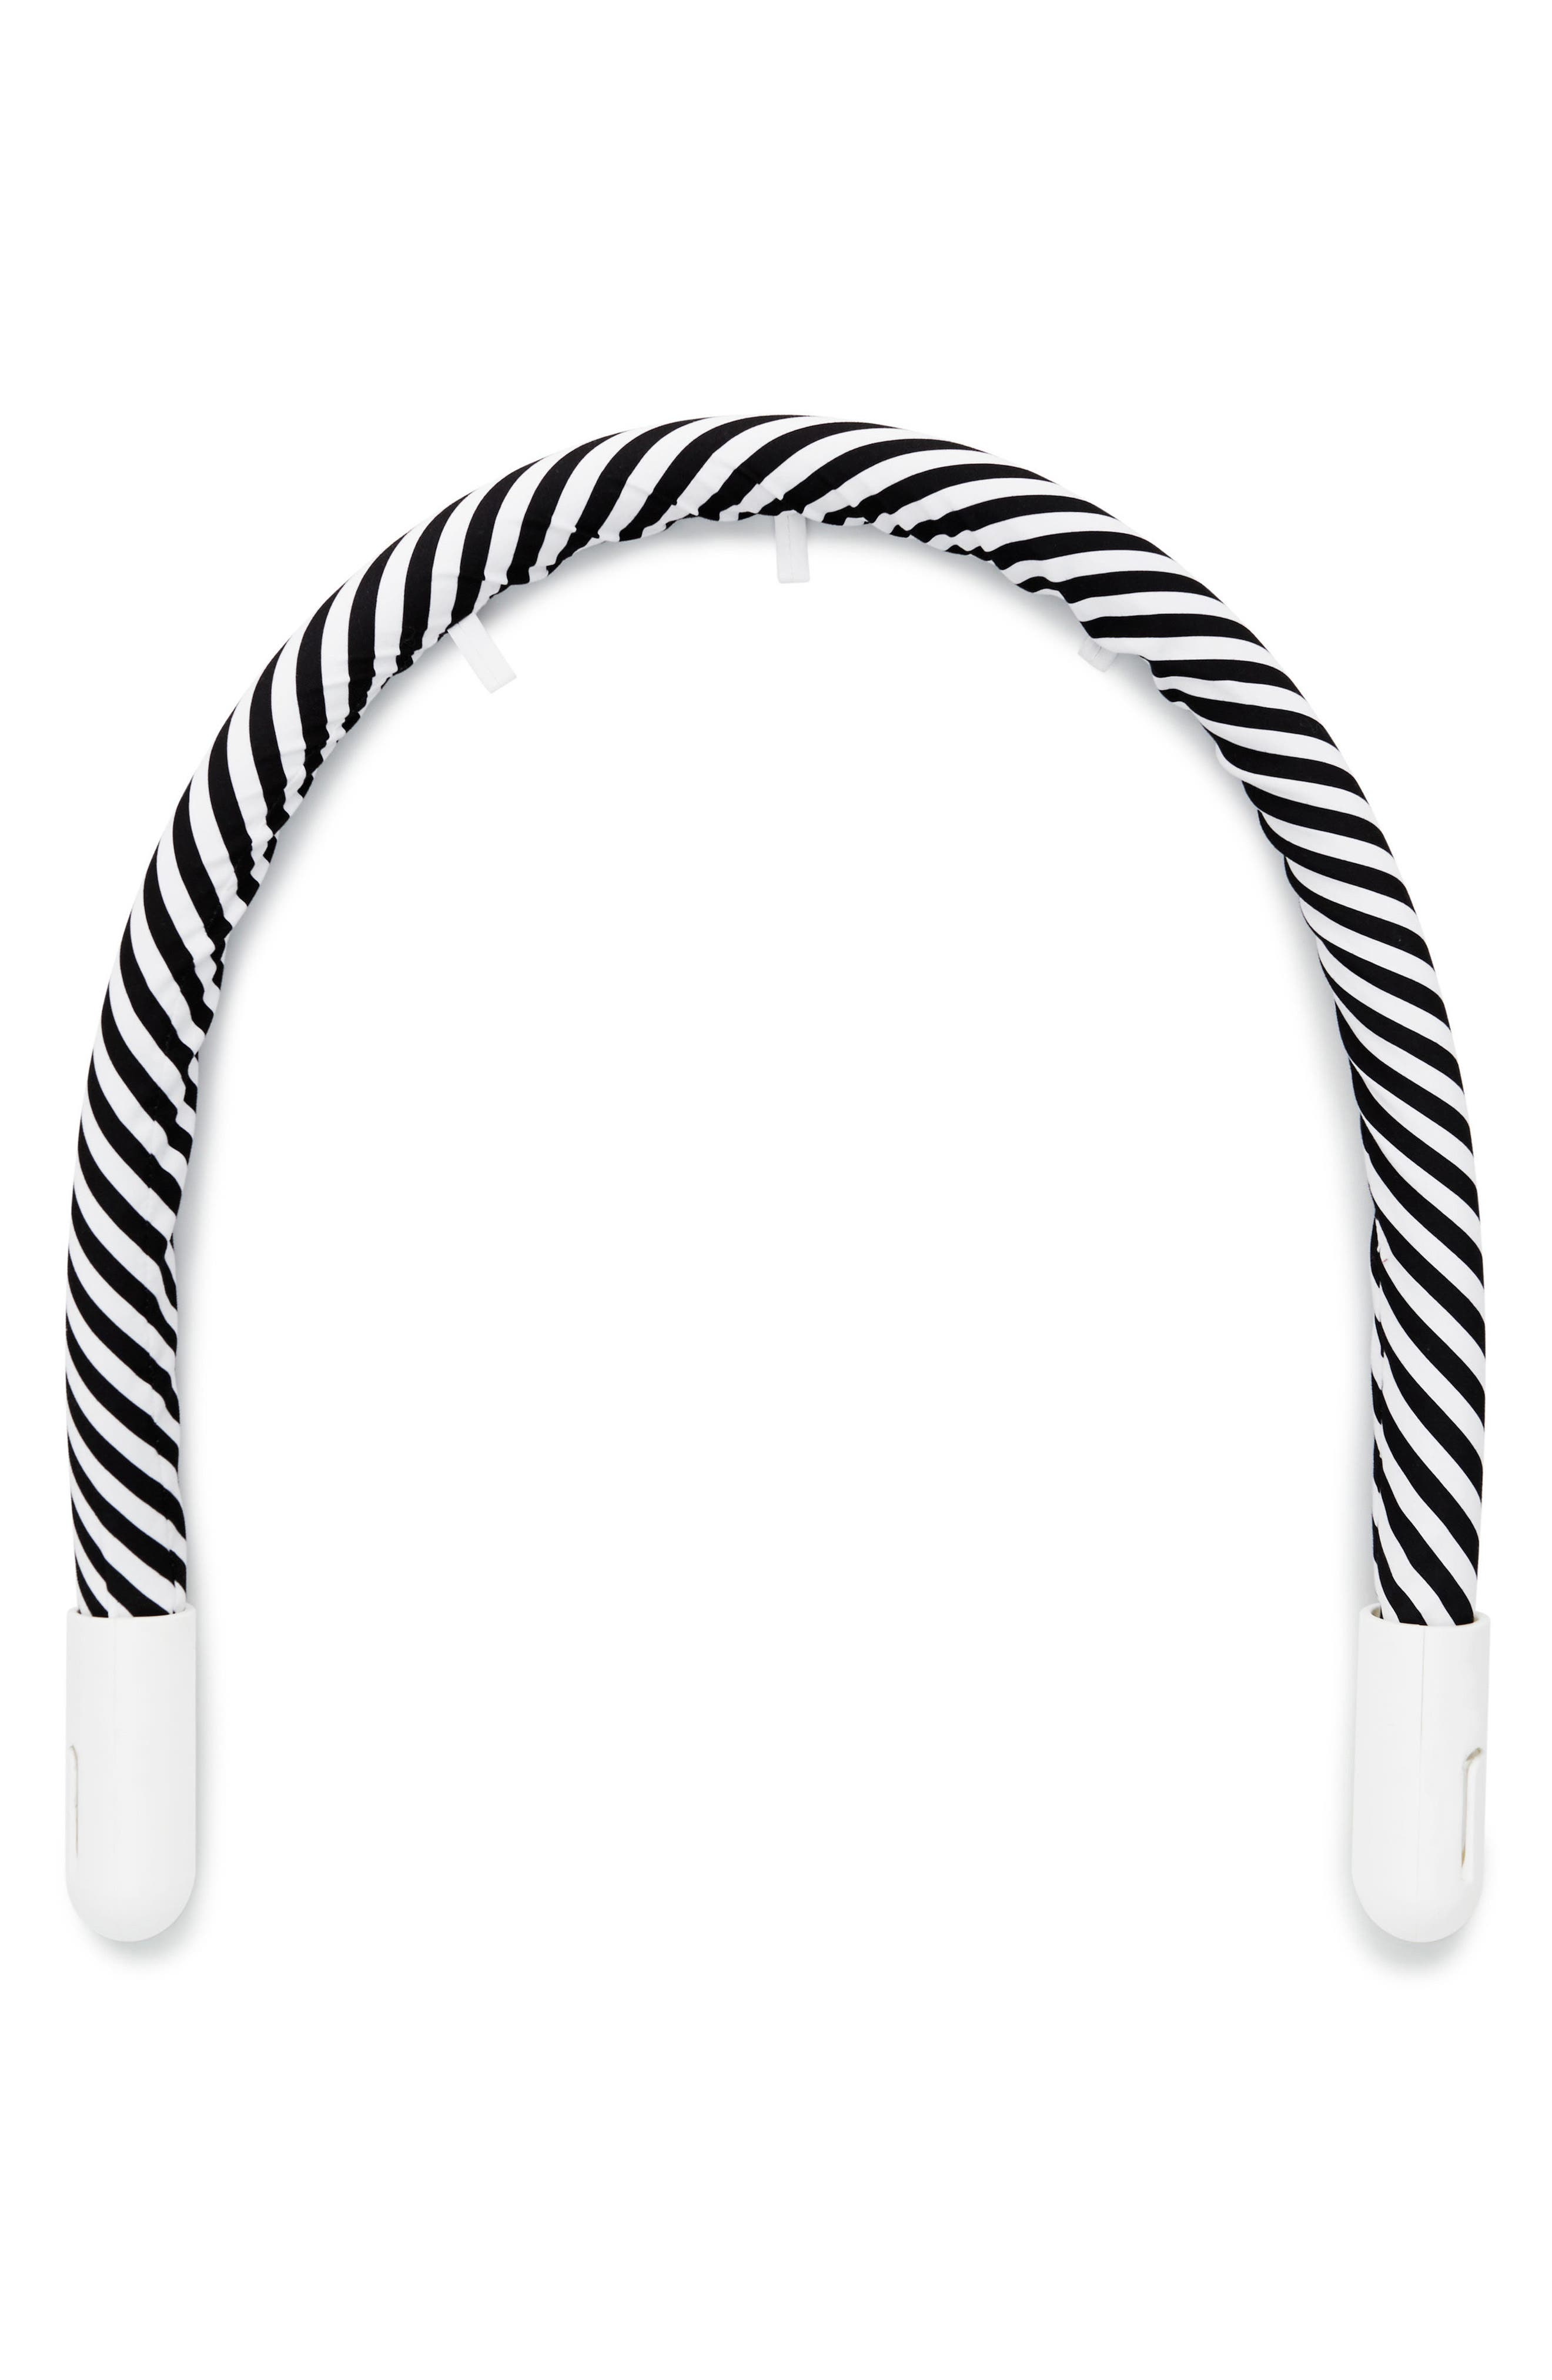 Toy Arch,                             Main thumbnail 1, color,                             Black/ White